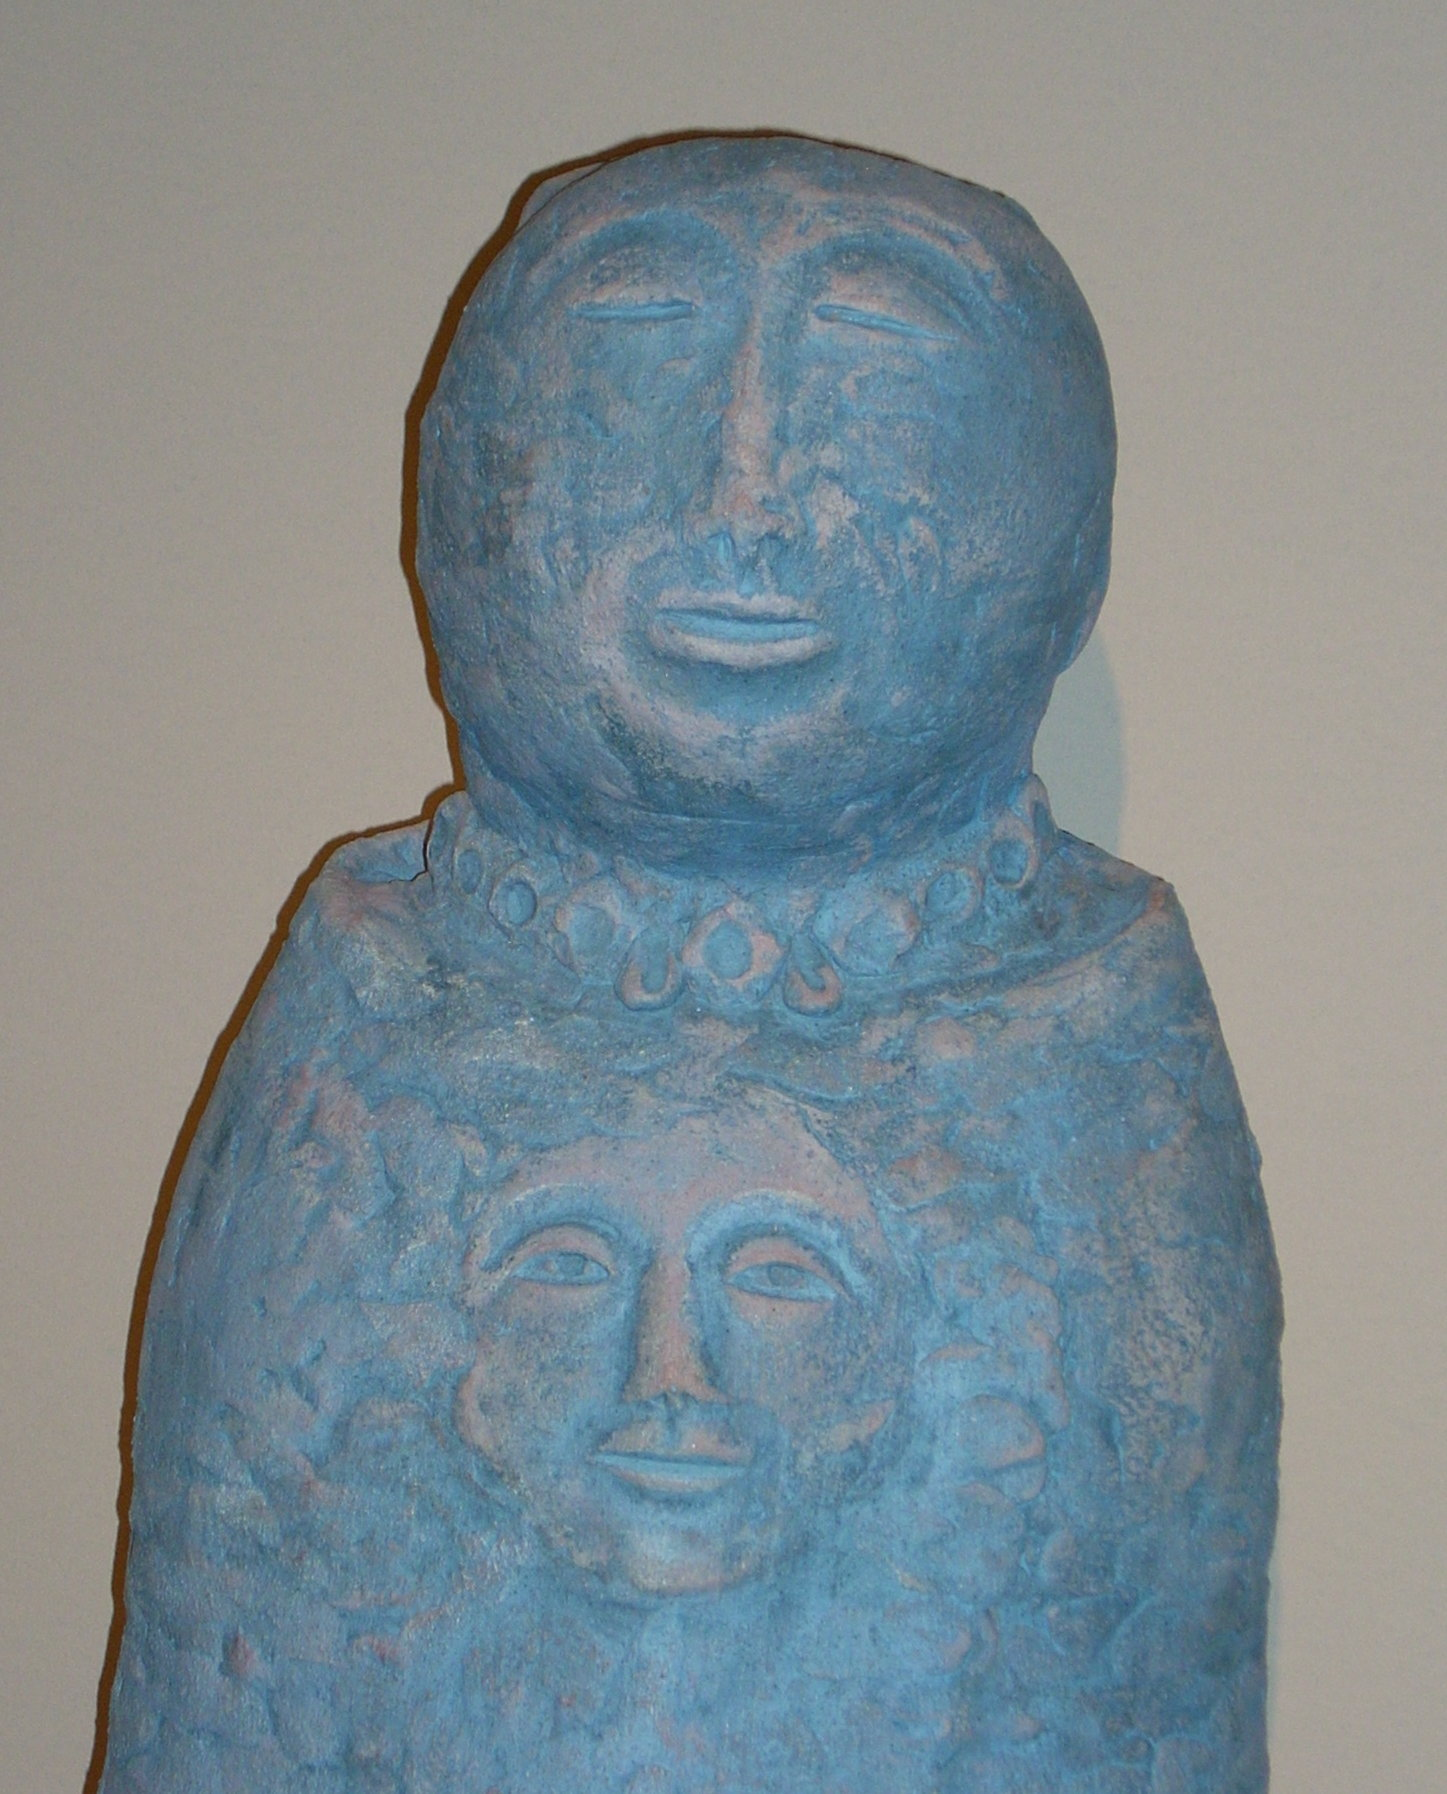 co-bryant-blue-figure.JPG